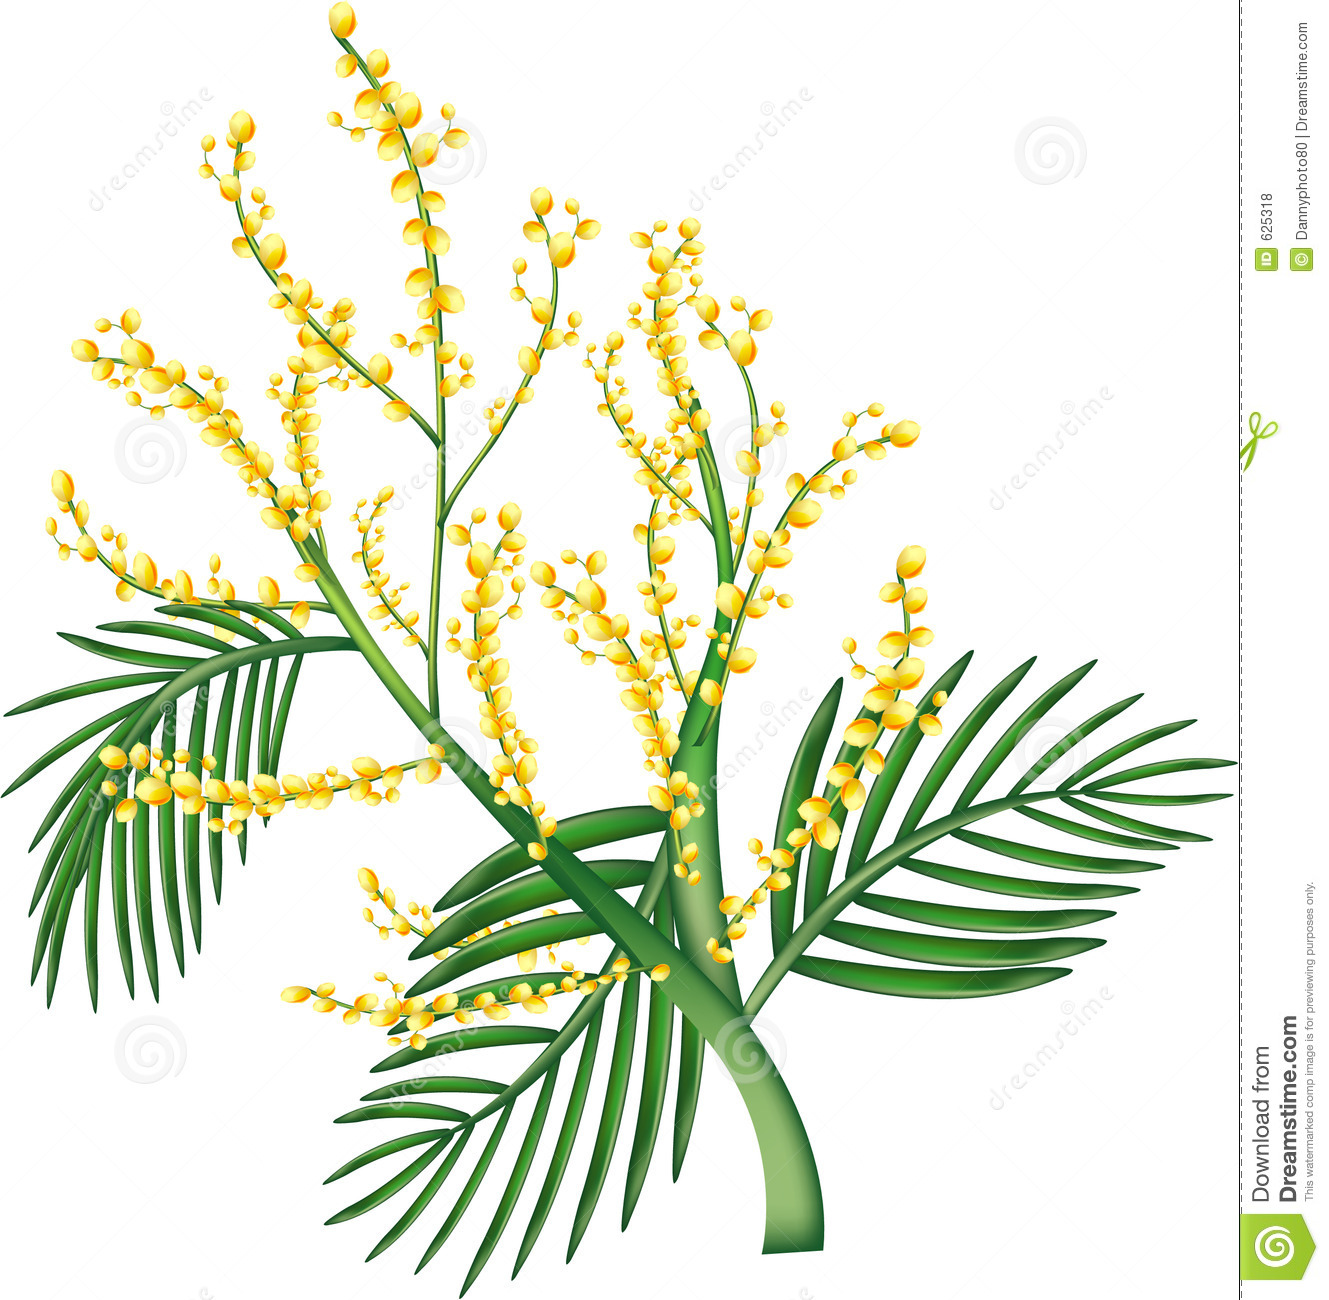 Australian Wattle Stock Illustrations – 17 Australian Wattle Stock ...